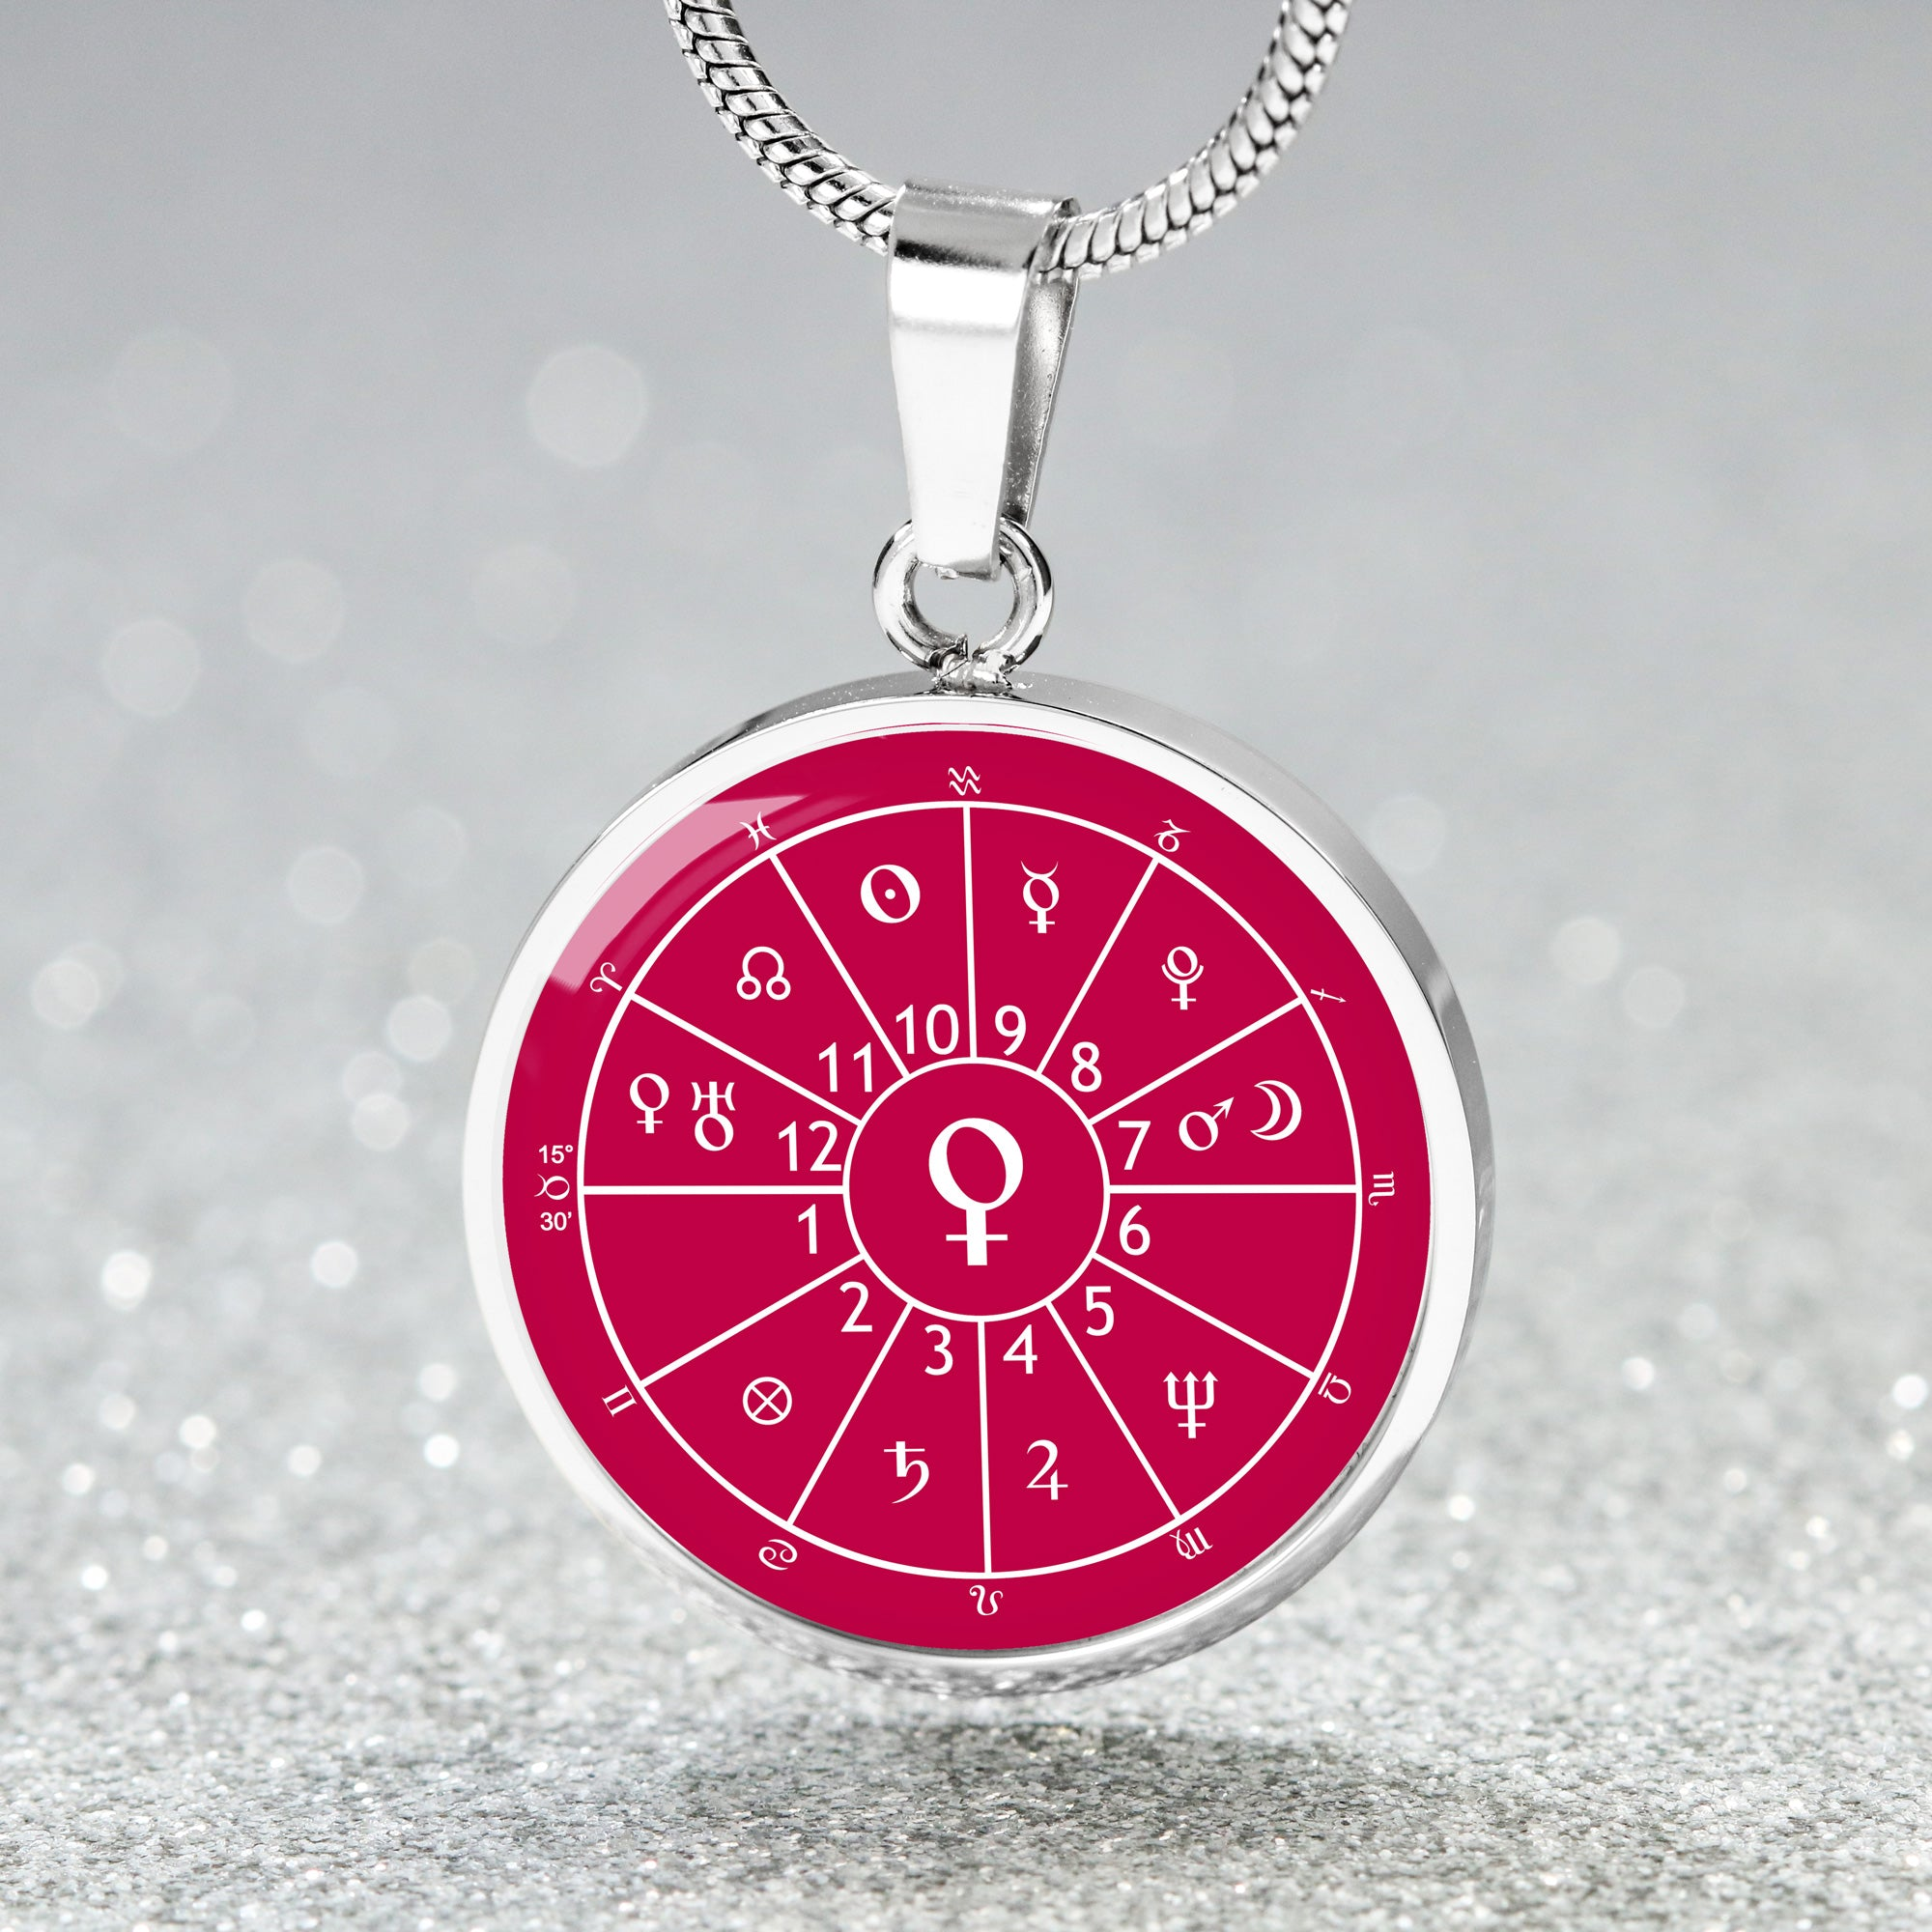 Bespoke Astrology Chart Necklace